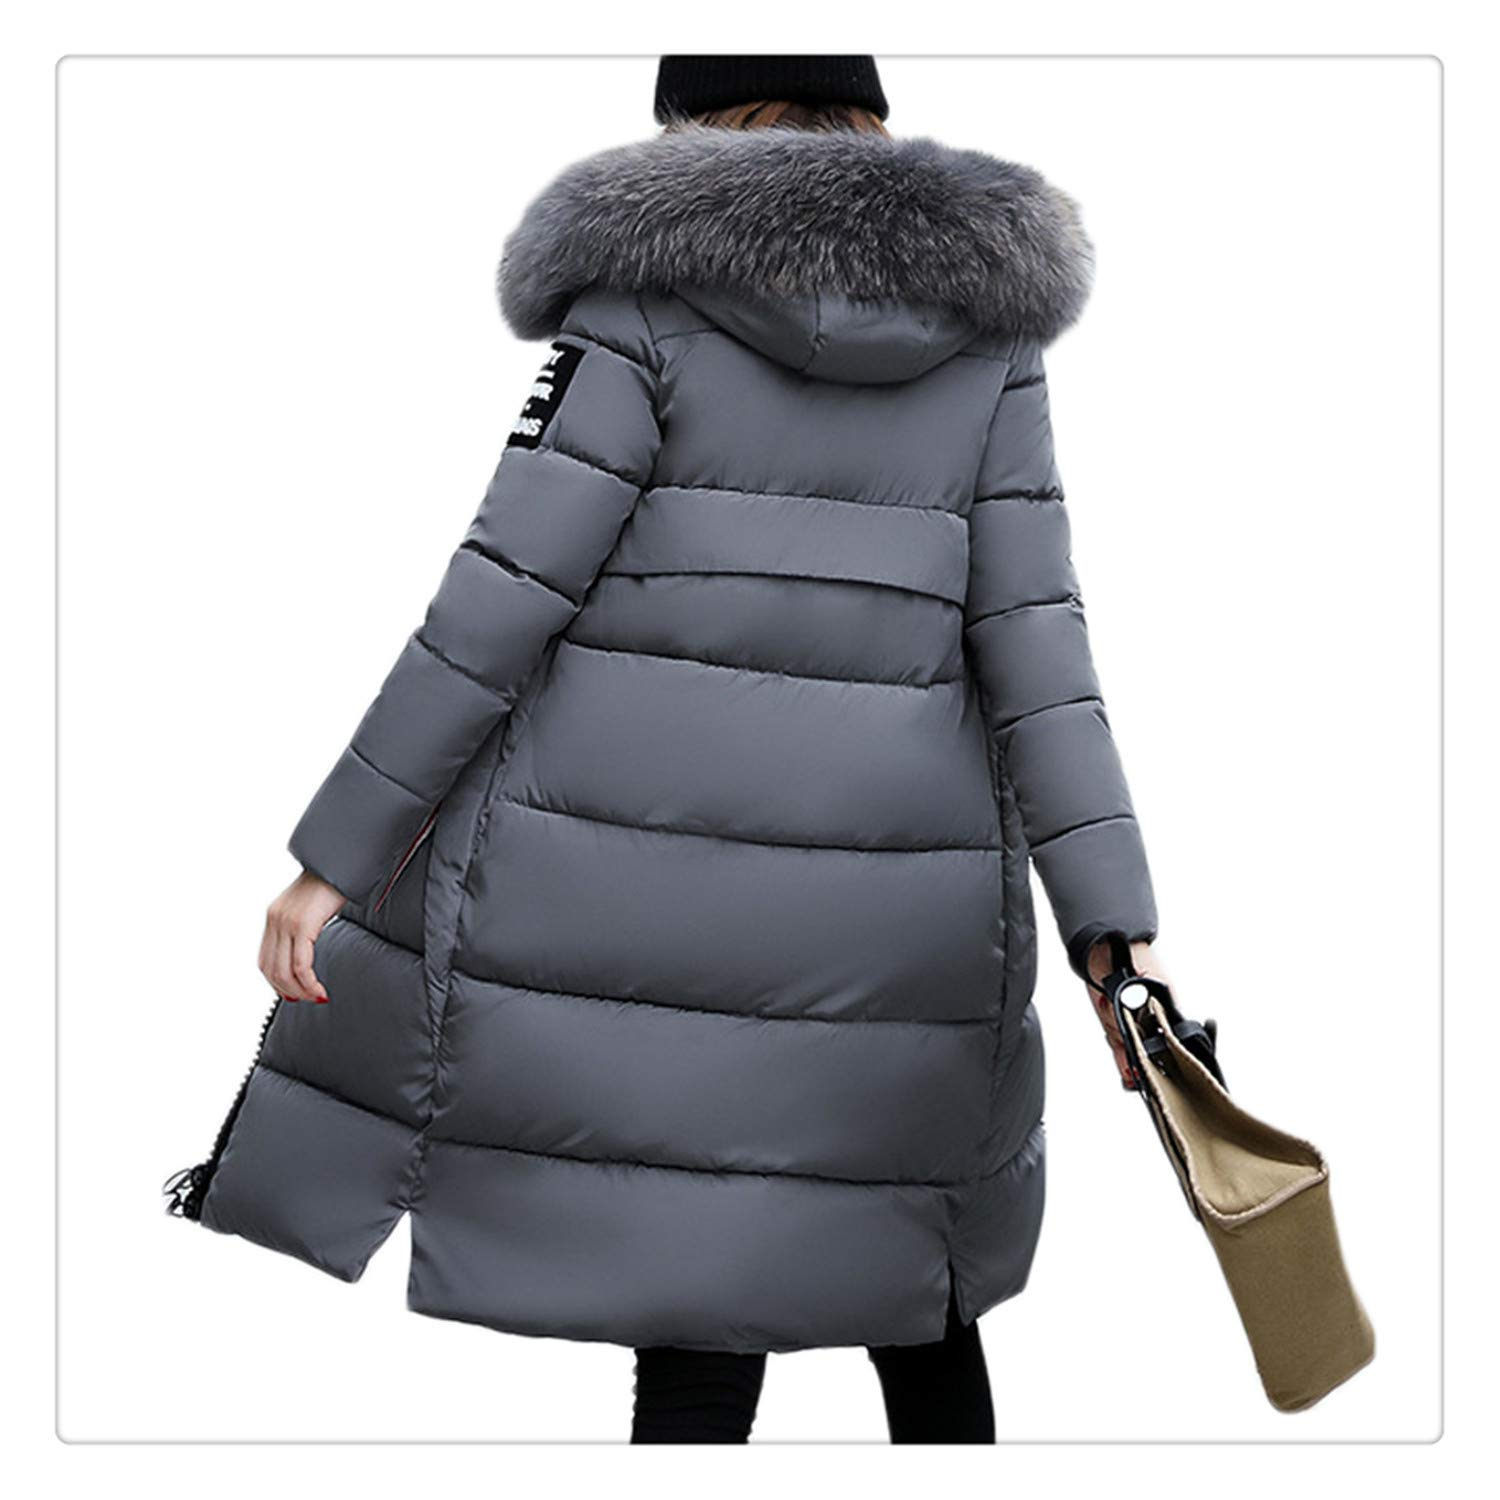 Amazon.com: Anghuluqub Warm Winter Jacket Women Big Fur ...